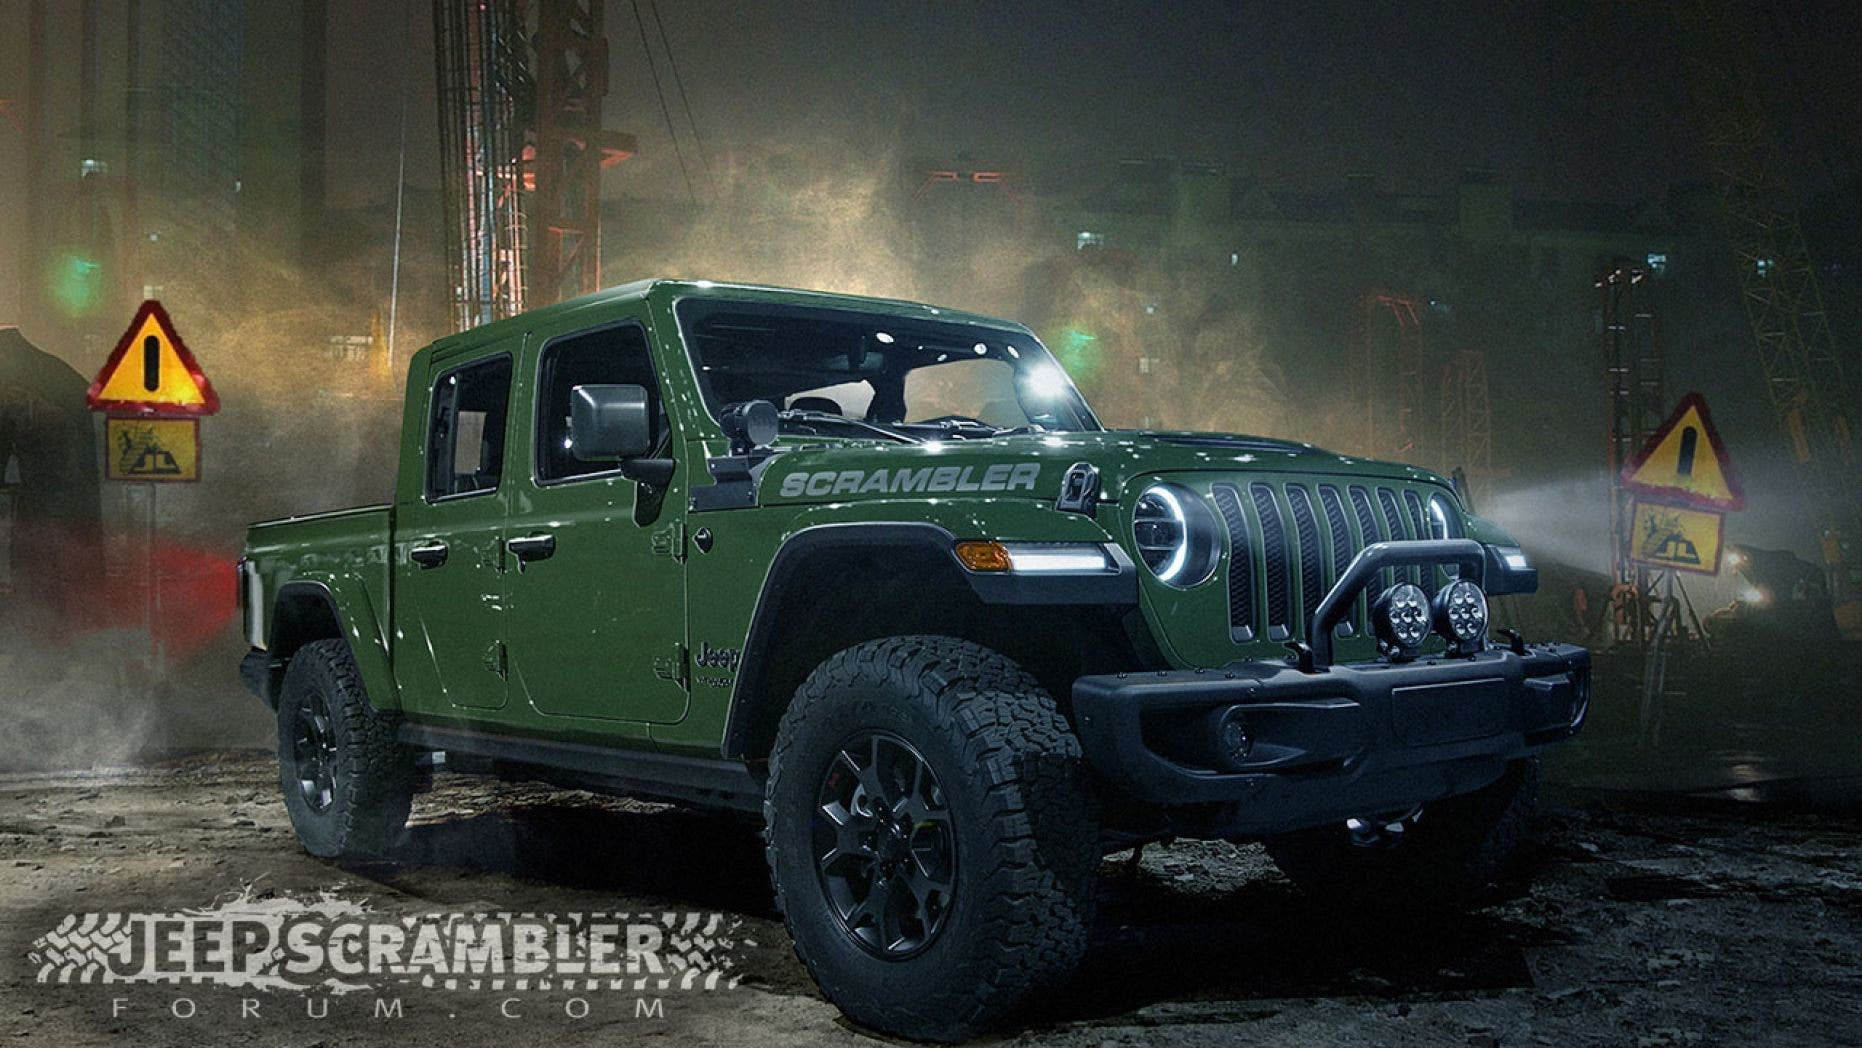 The Jeep Scrambler Forum used leaked info and photos of camouflaged prototypes to render what the truck will likely look like.